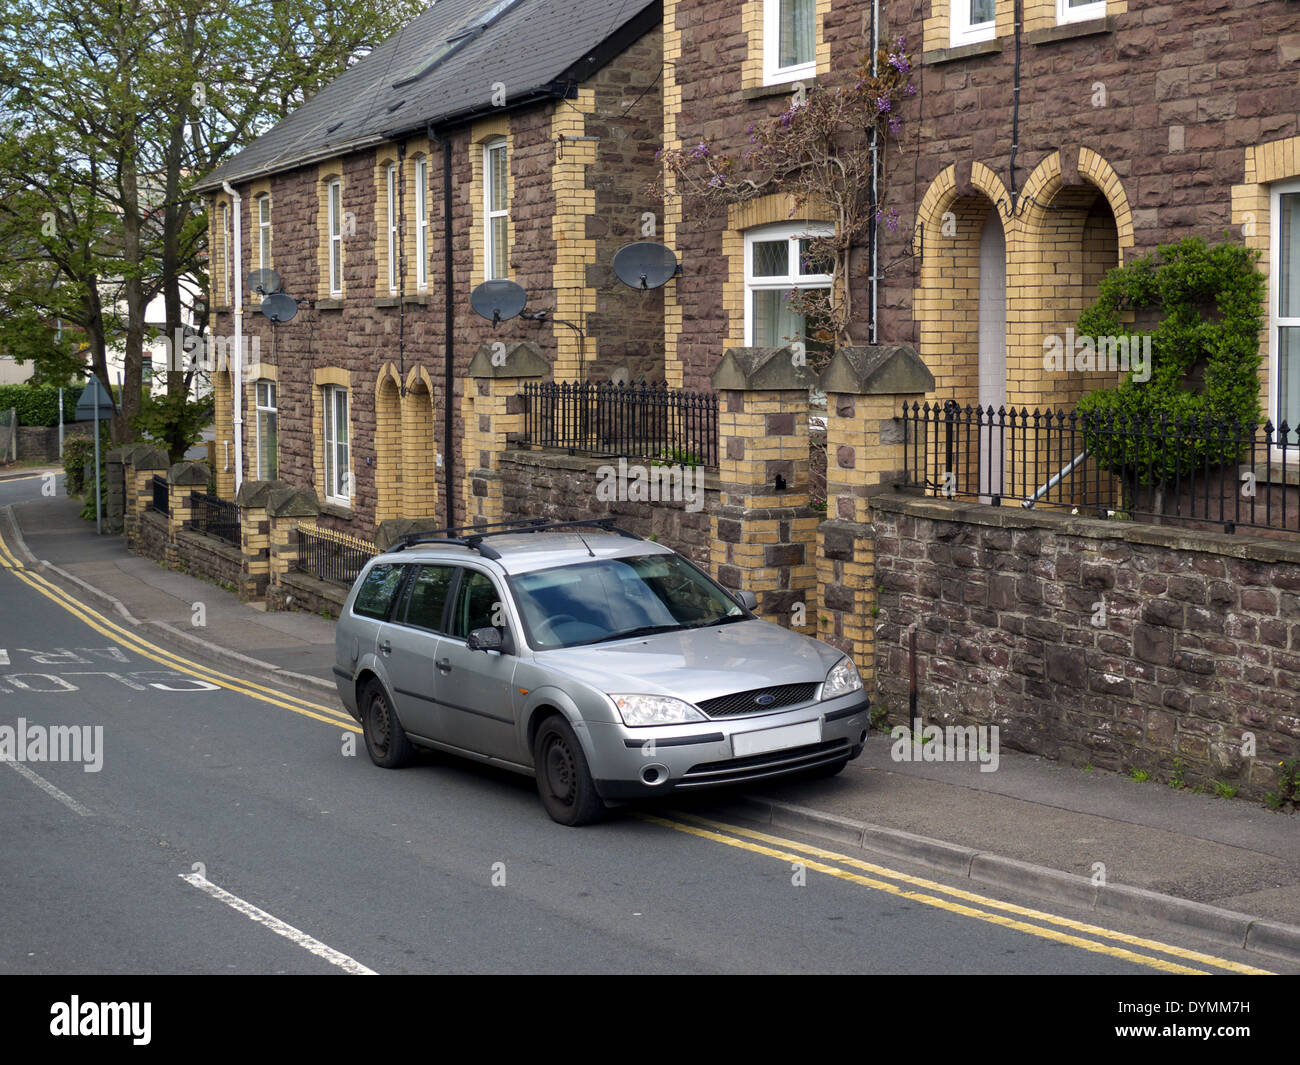 Car parked on pavement and double yellow lines, UK - Stock Image